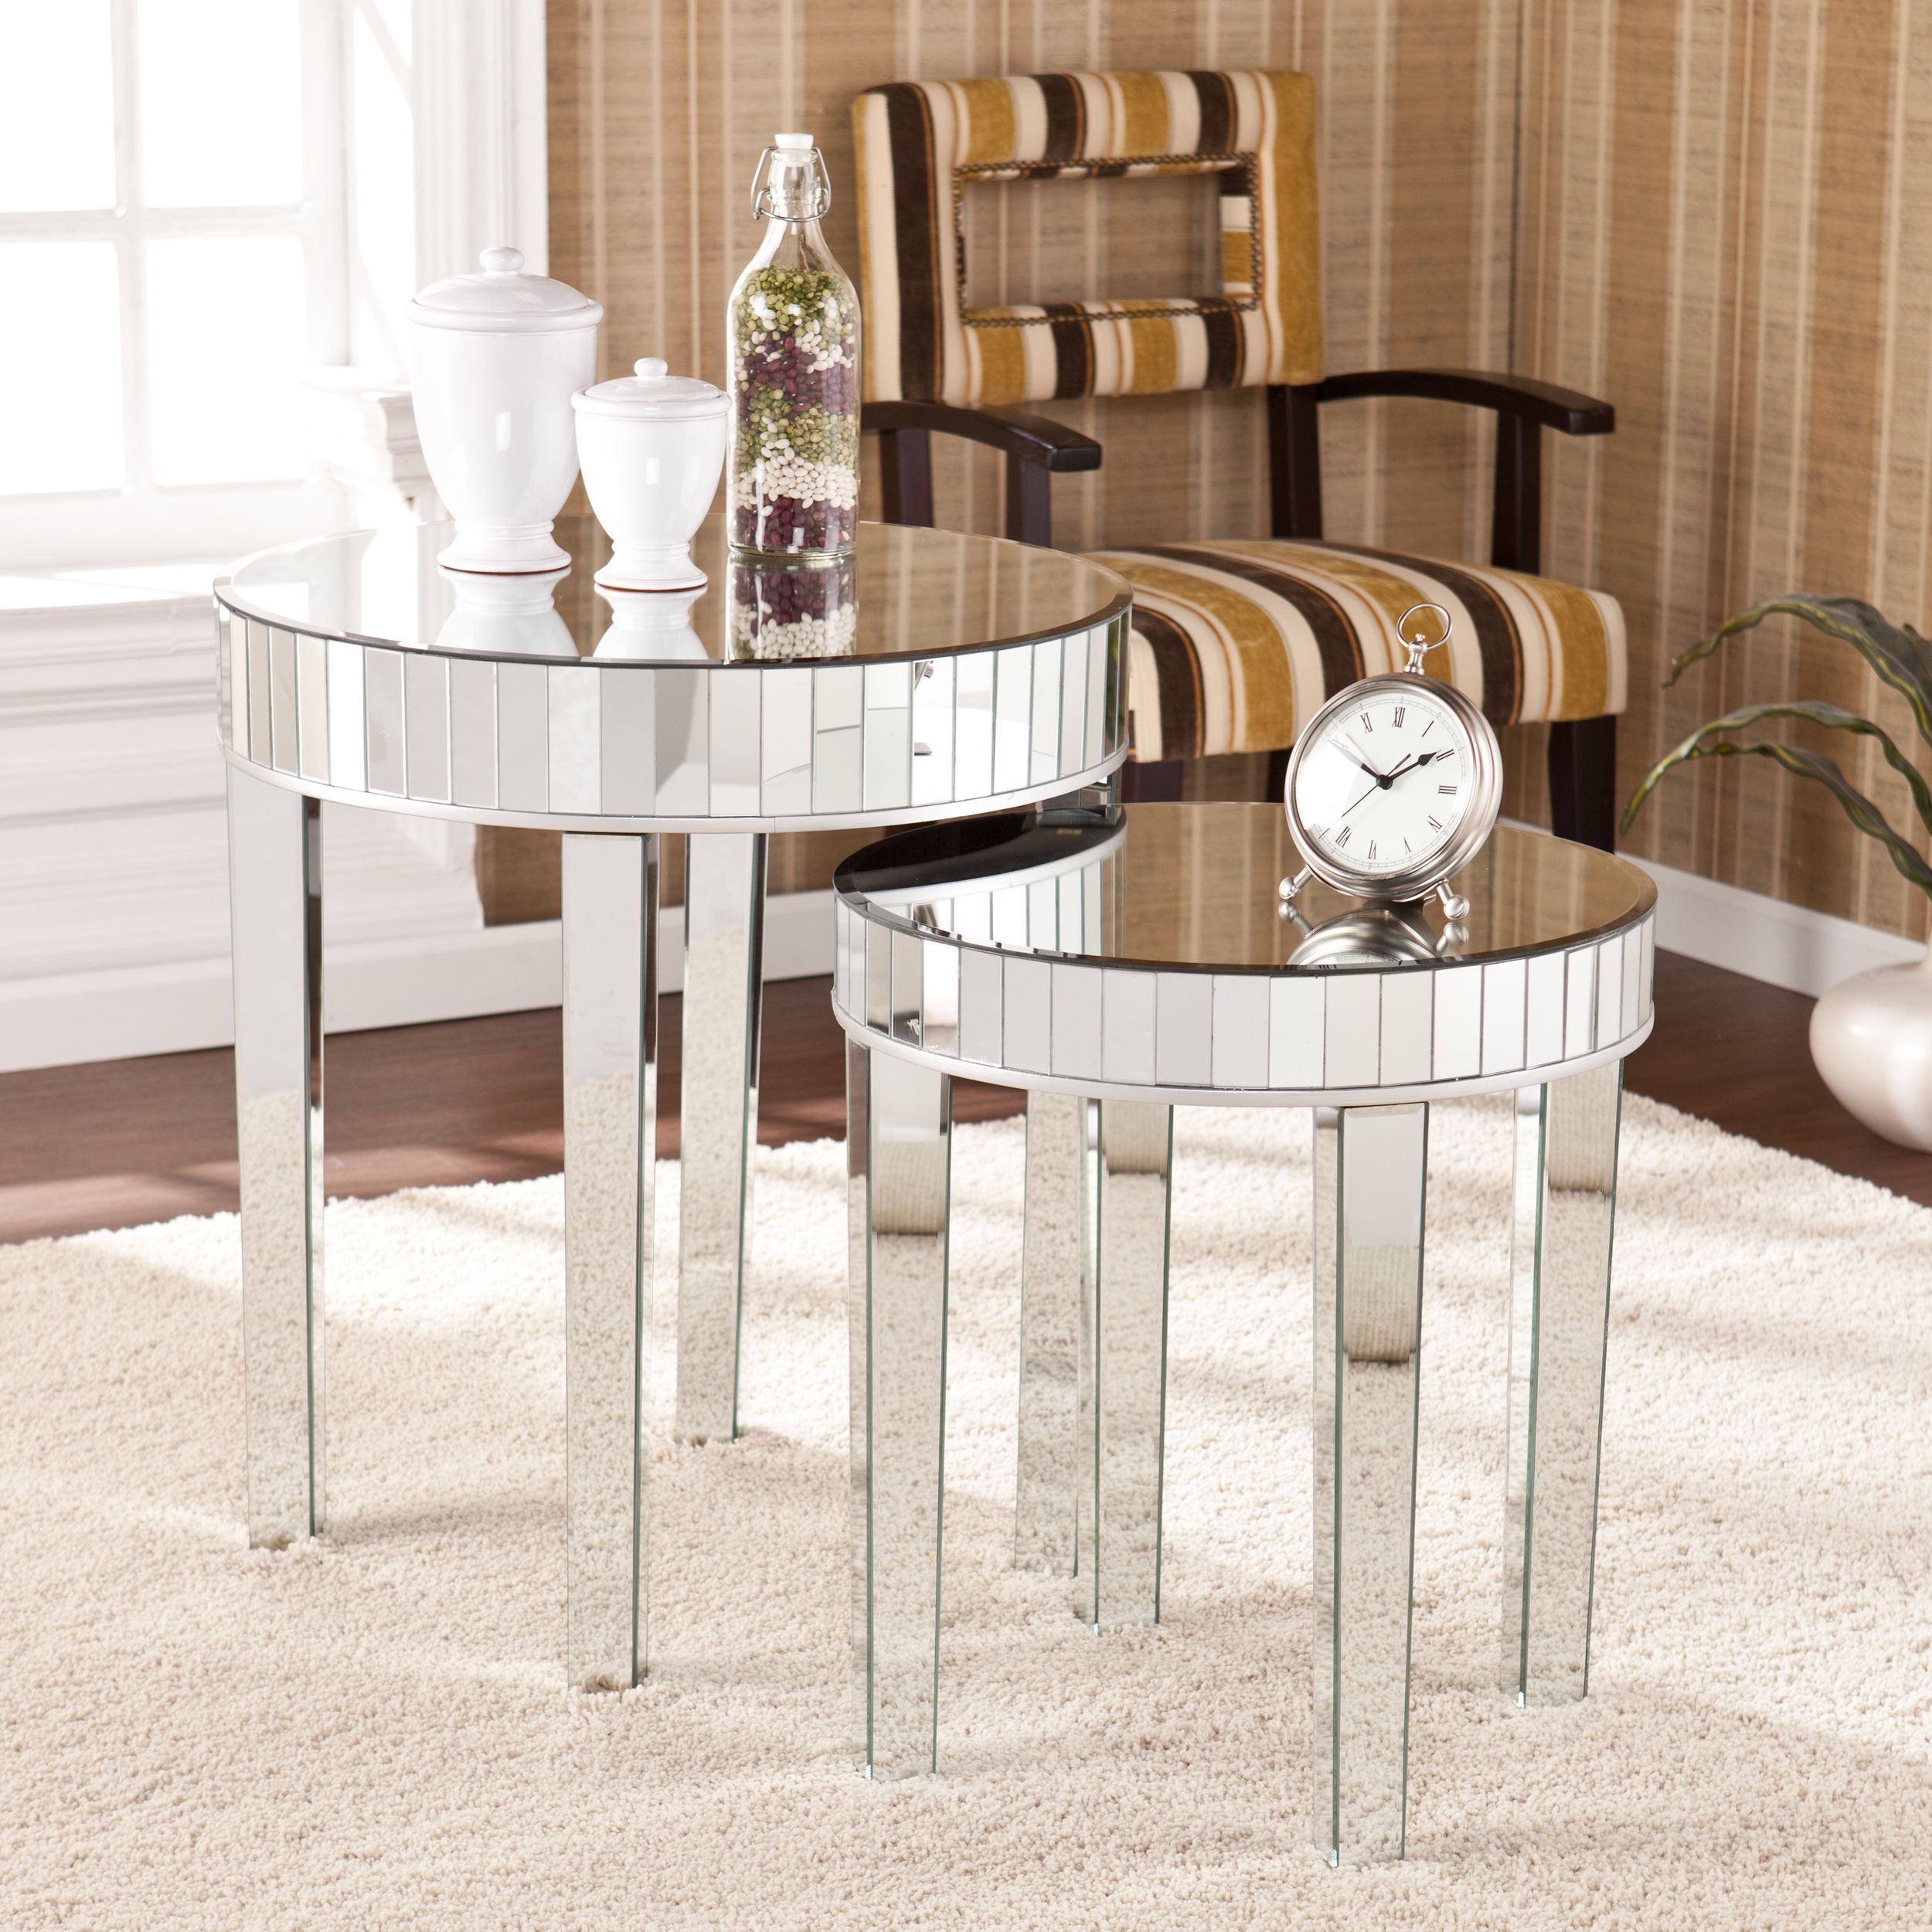 this upton home round mirror nesting accent table set the perfect and accessory for your living room bedroom entryway beveled edge each small console lamps original tiffany cool